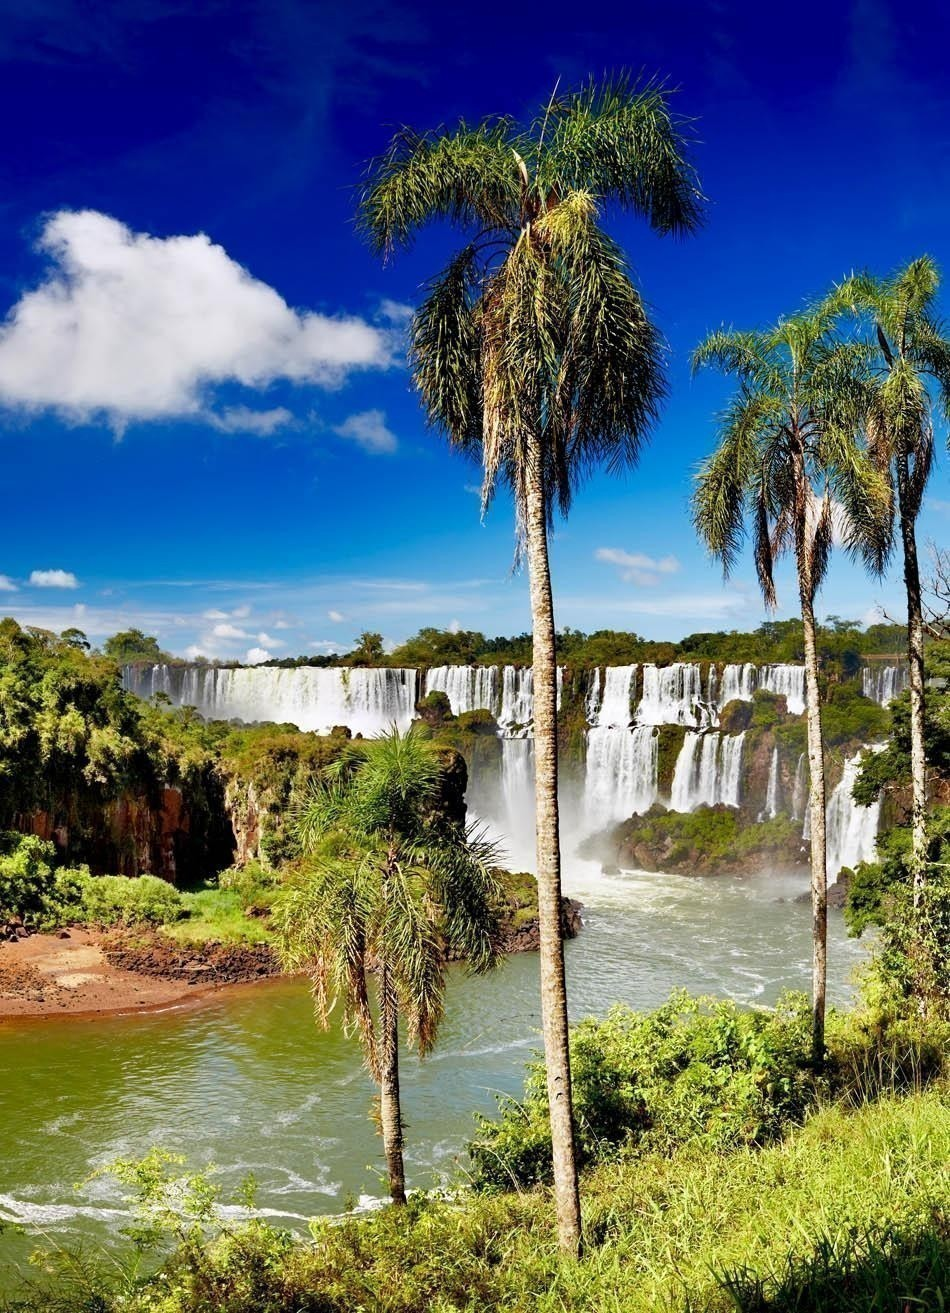 Iguassu Falls, the largest series of waterfalls of the world, located at the Brazilian and Argentinian border | Brazil Travel Guide